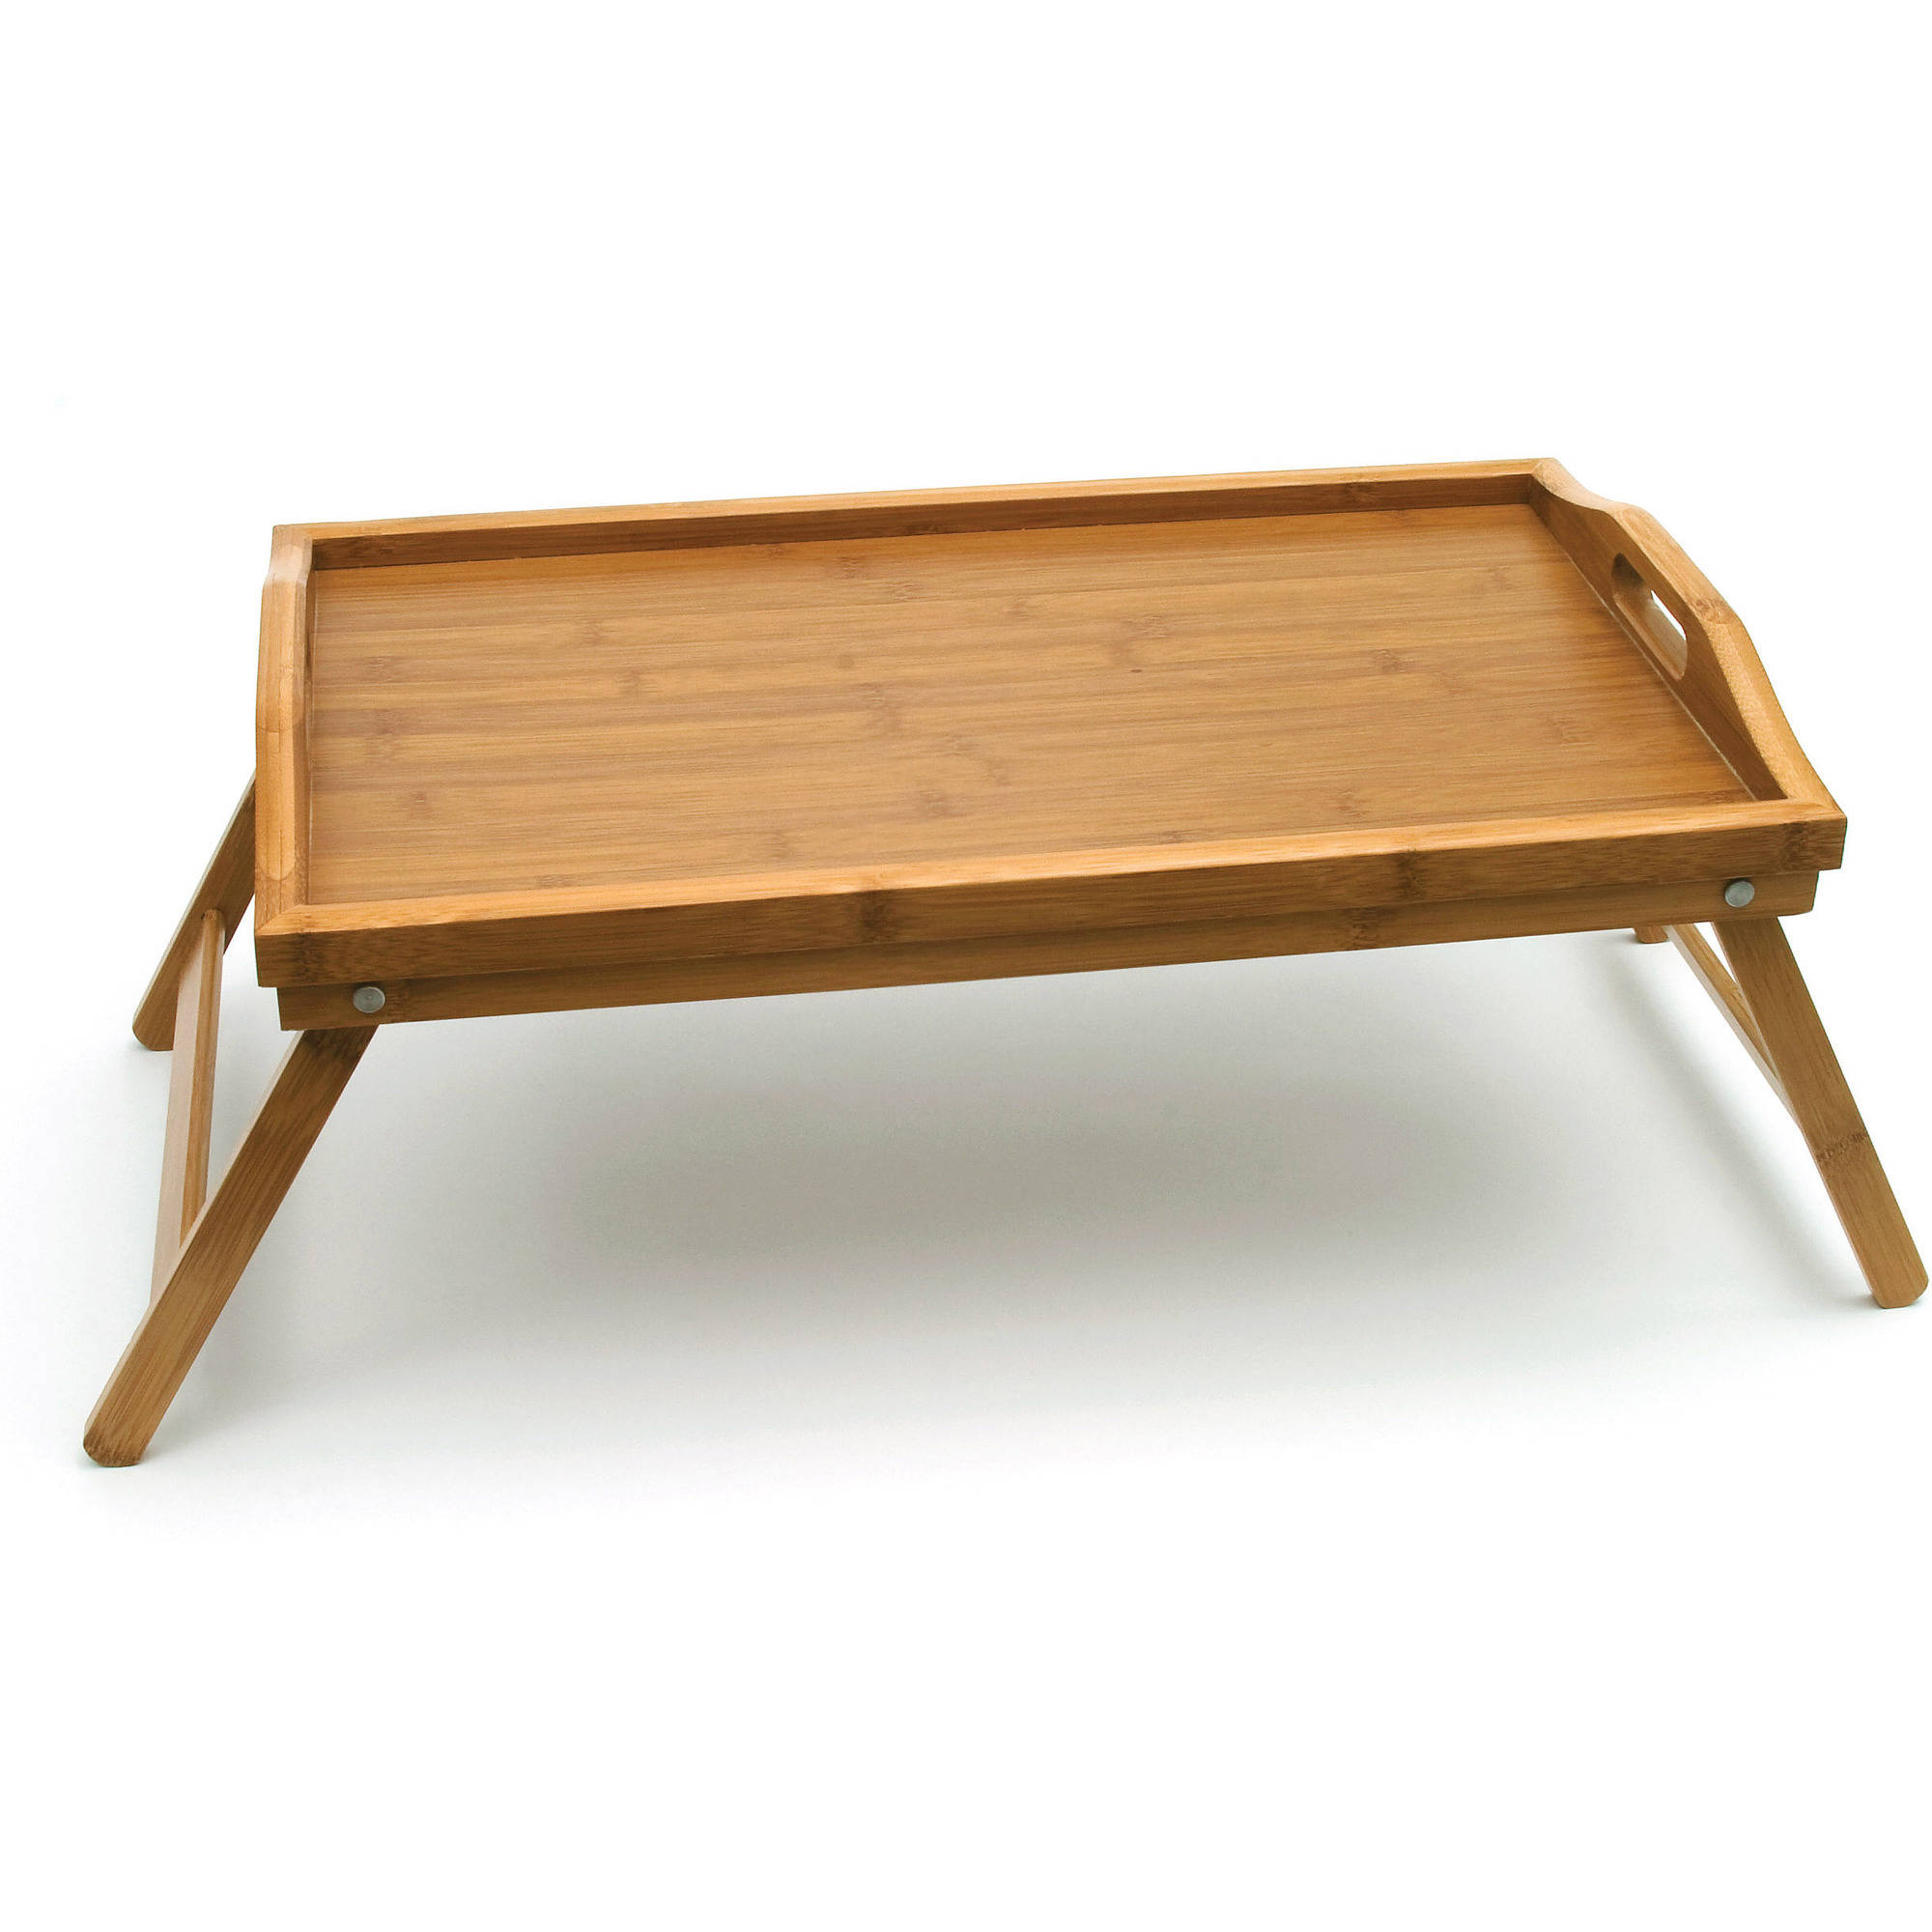 Bamboo Bed Tray With Folding Legs   Walmart.com